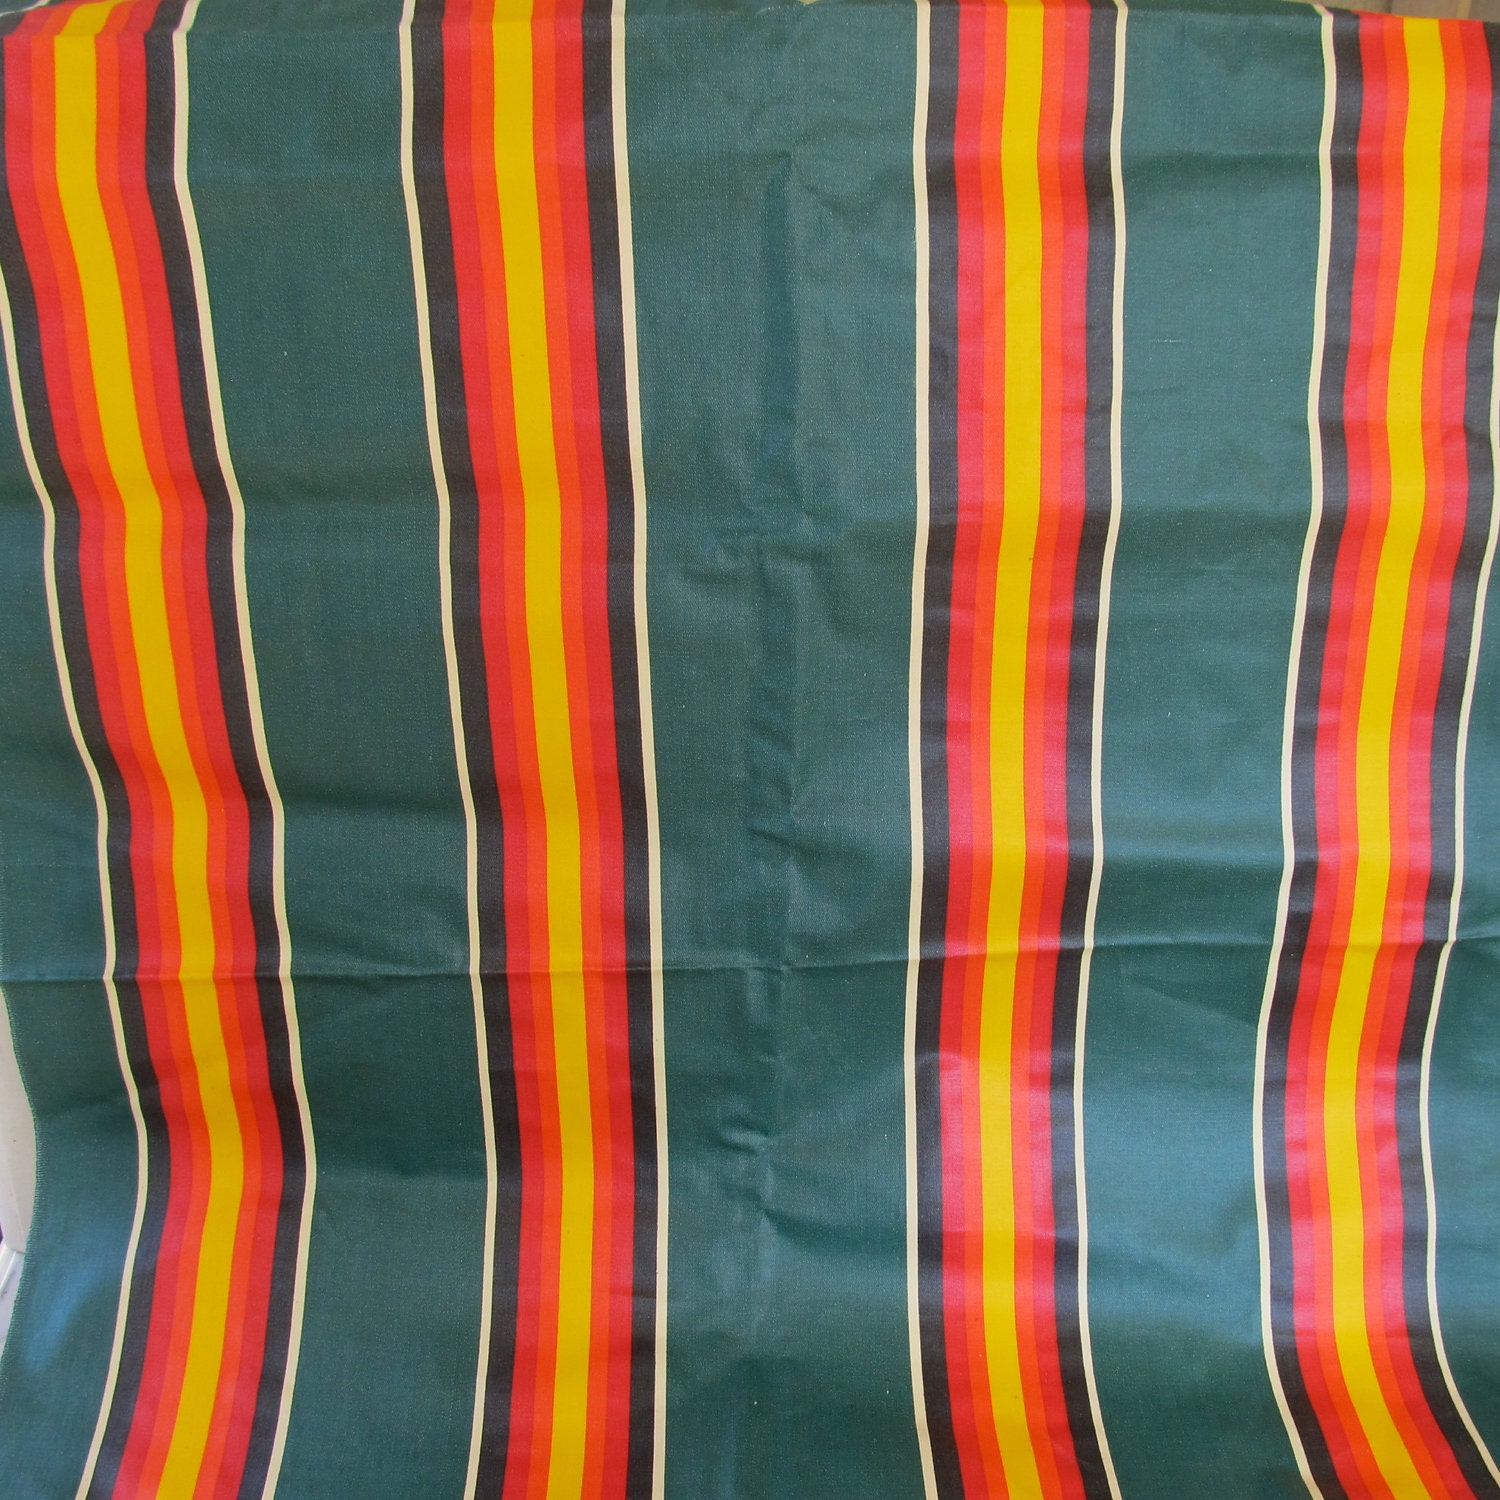 Vintage Striped Awning Fabric Green Orange Yellow Outdoor